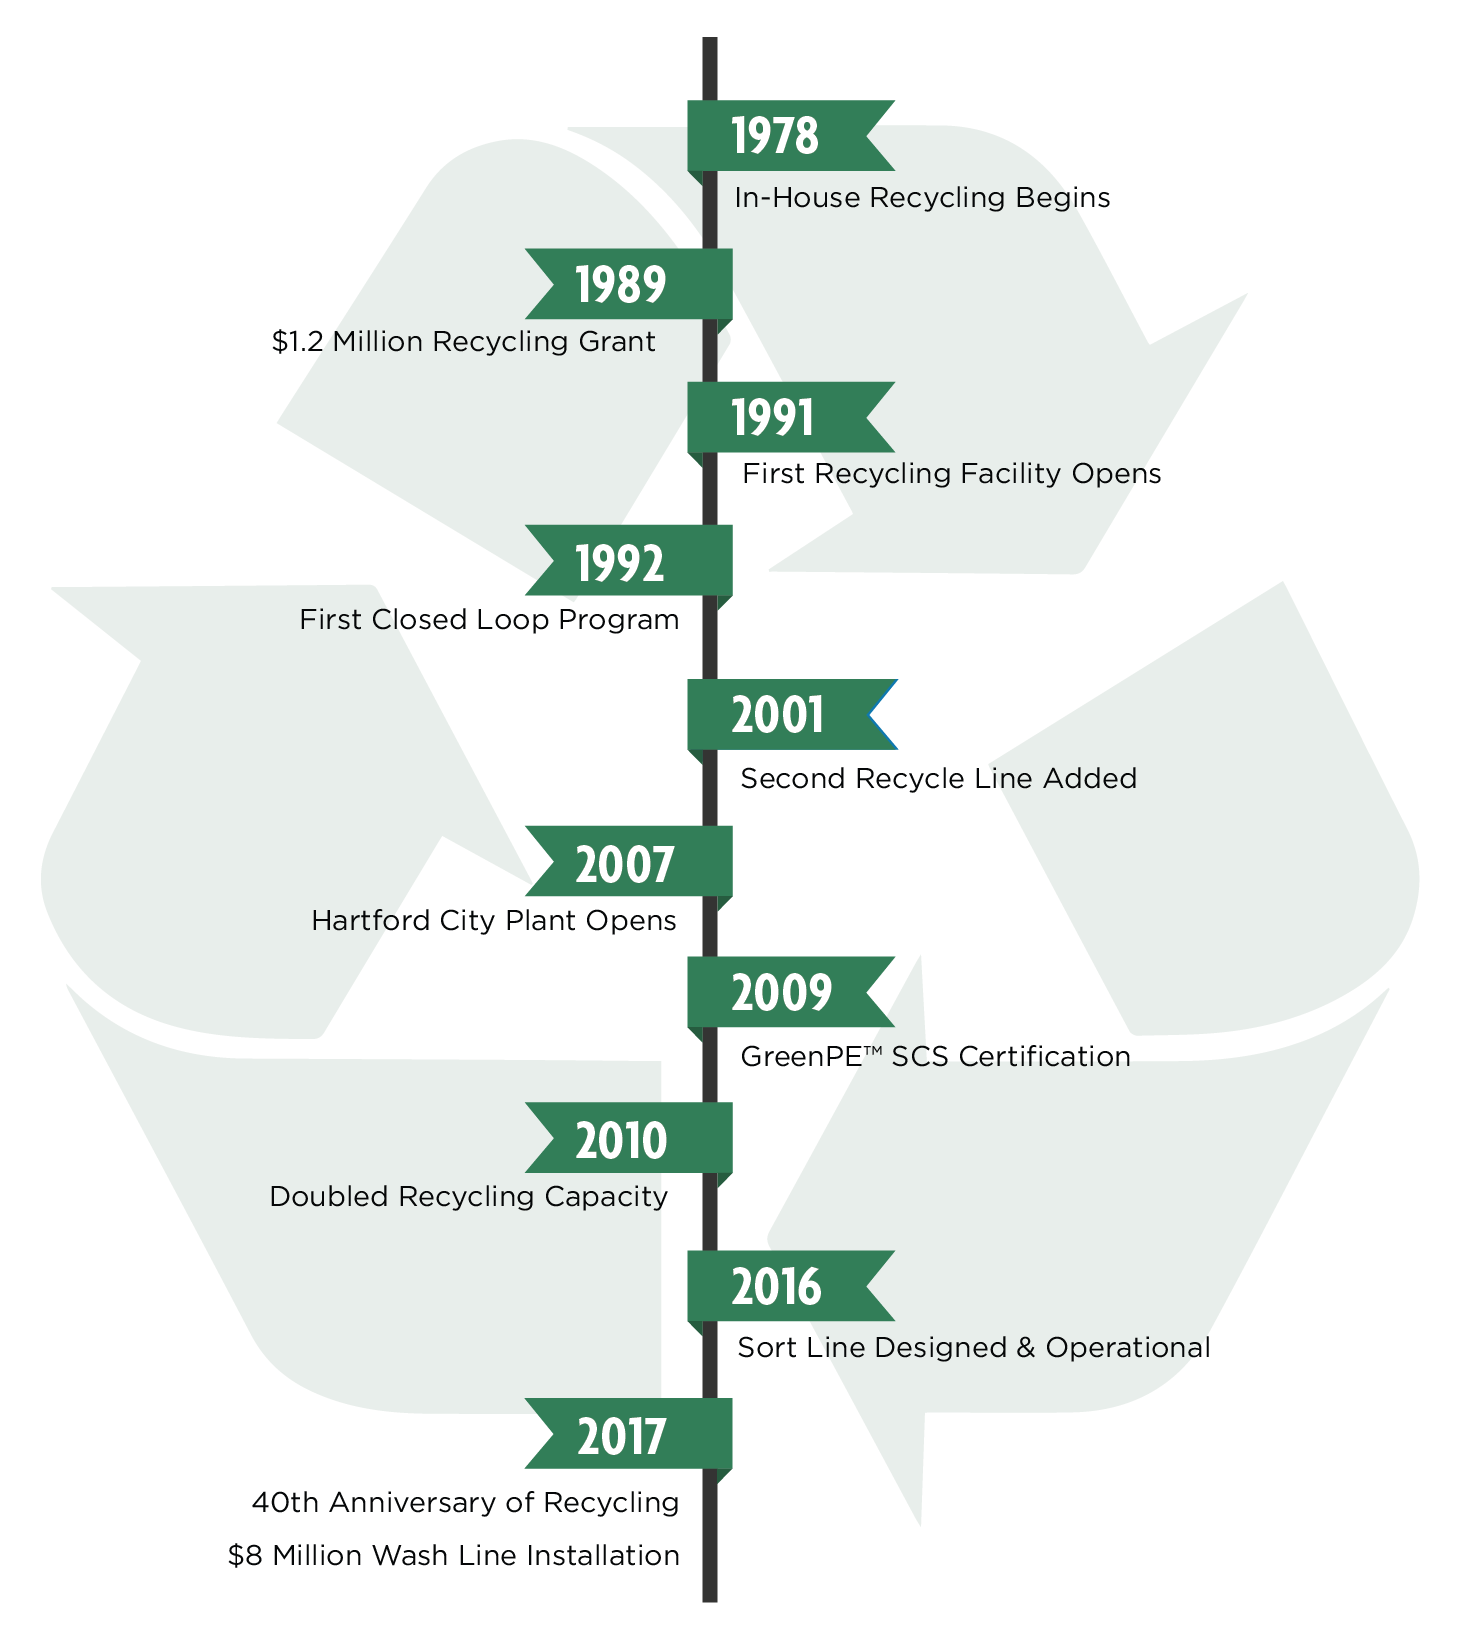 34 years of recycling evolution